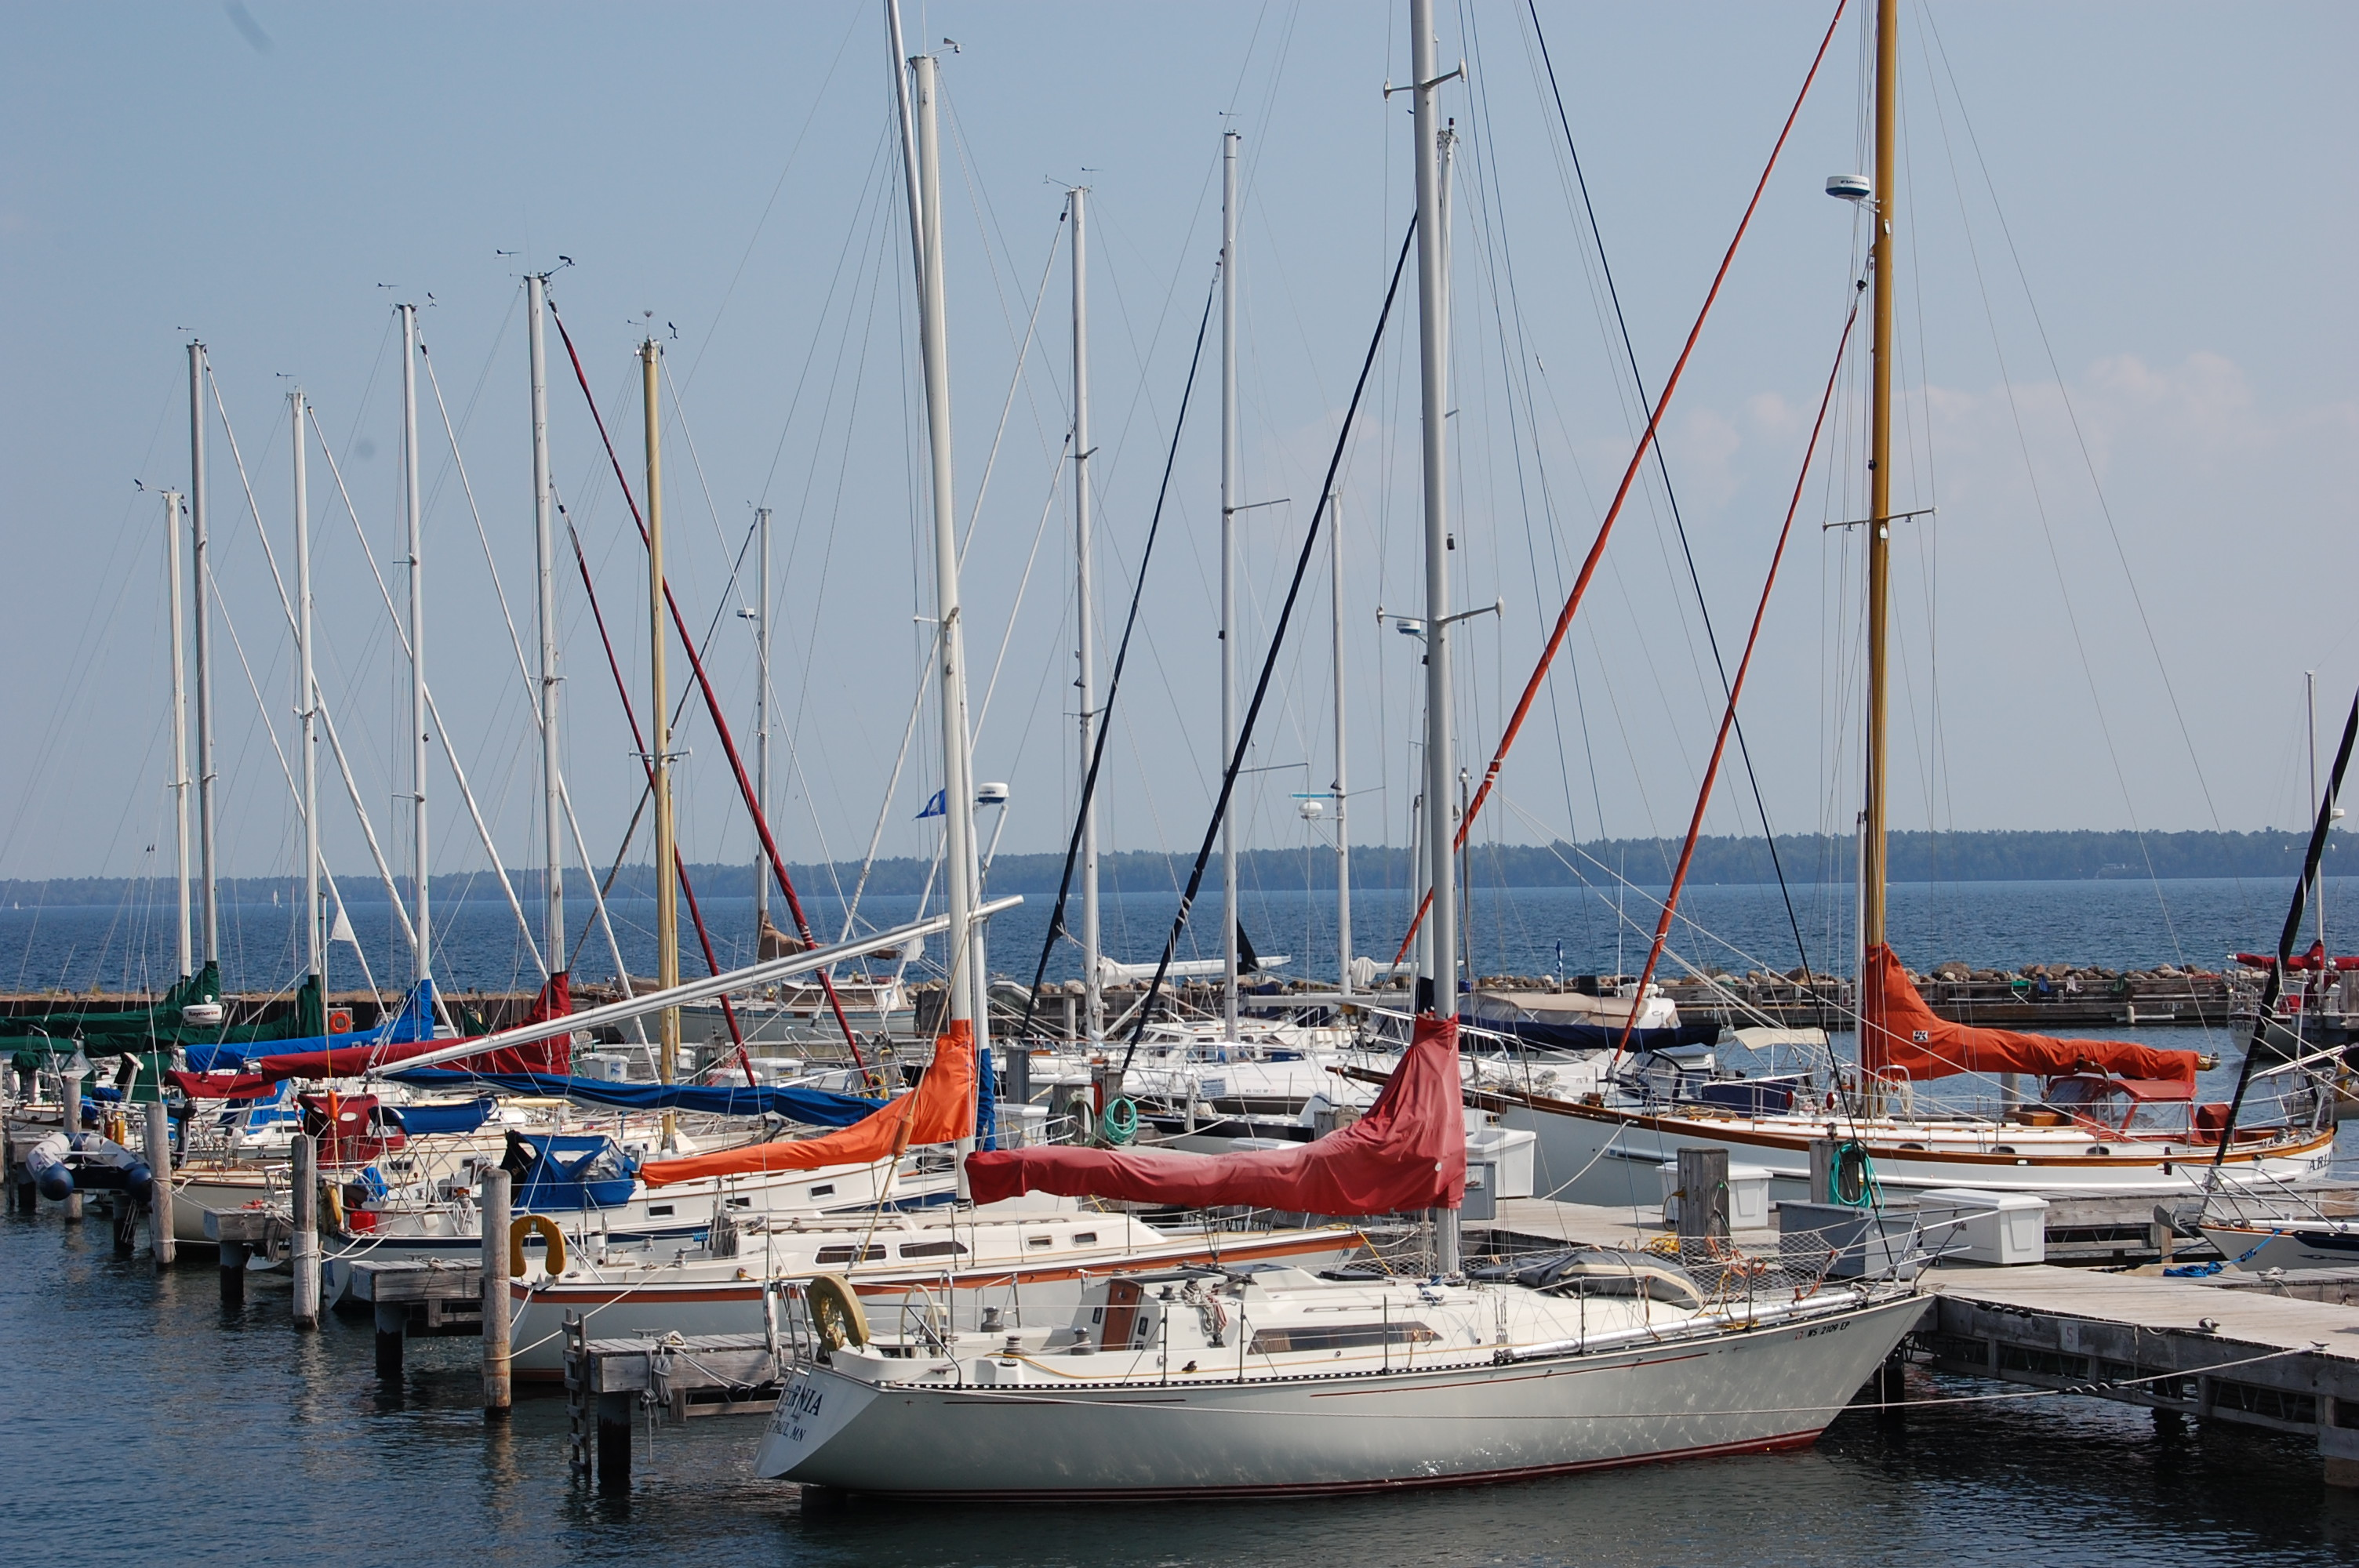 sailboats docked